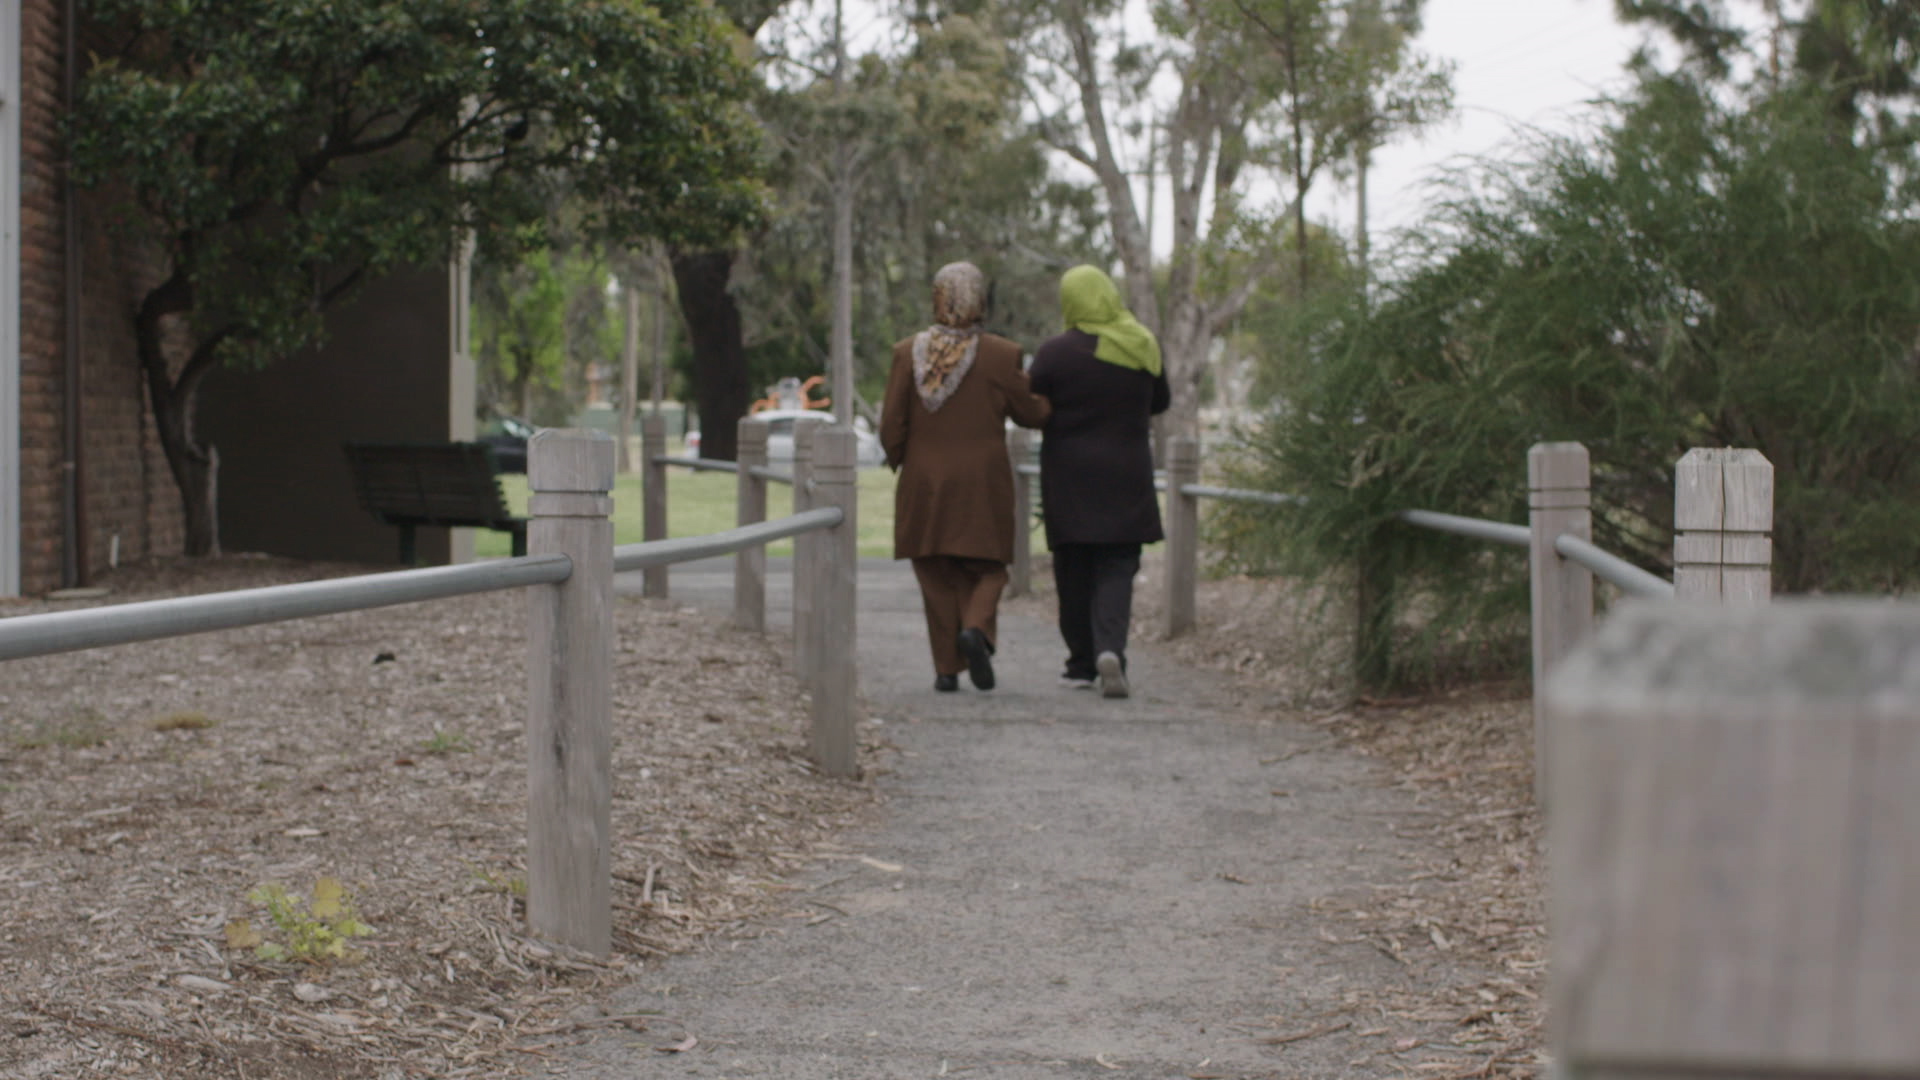 spectum-aged-care-video-2